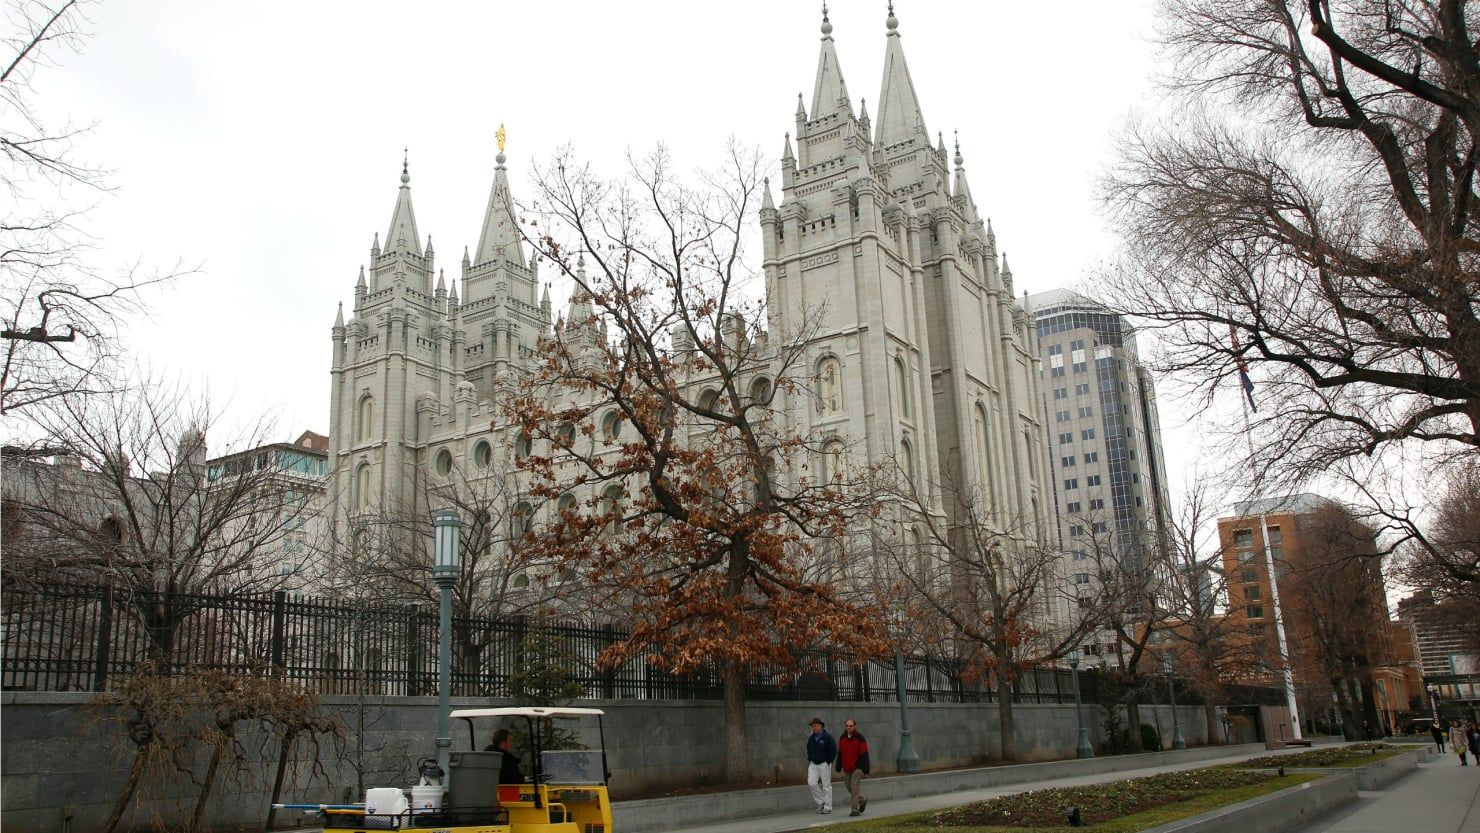 LDS church in Salt Lake City